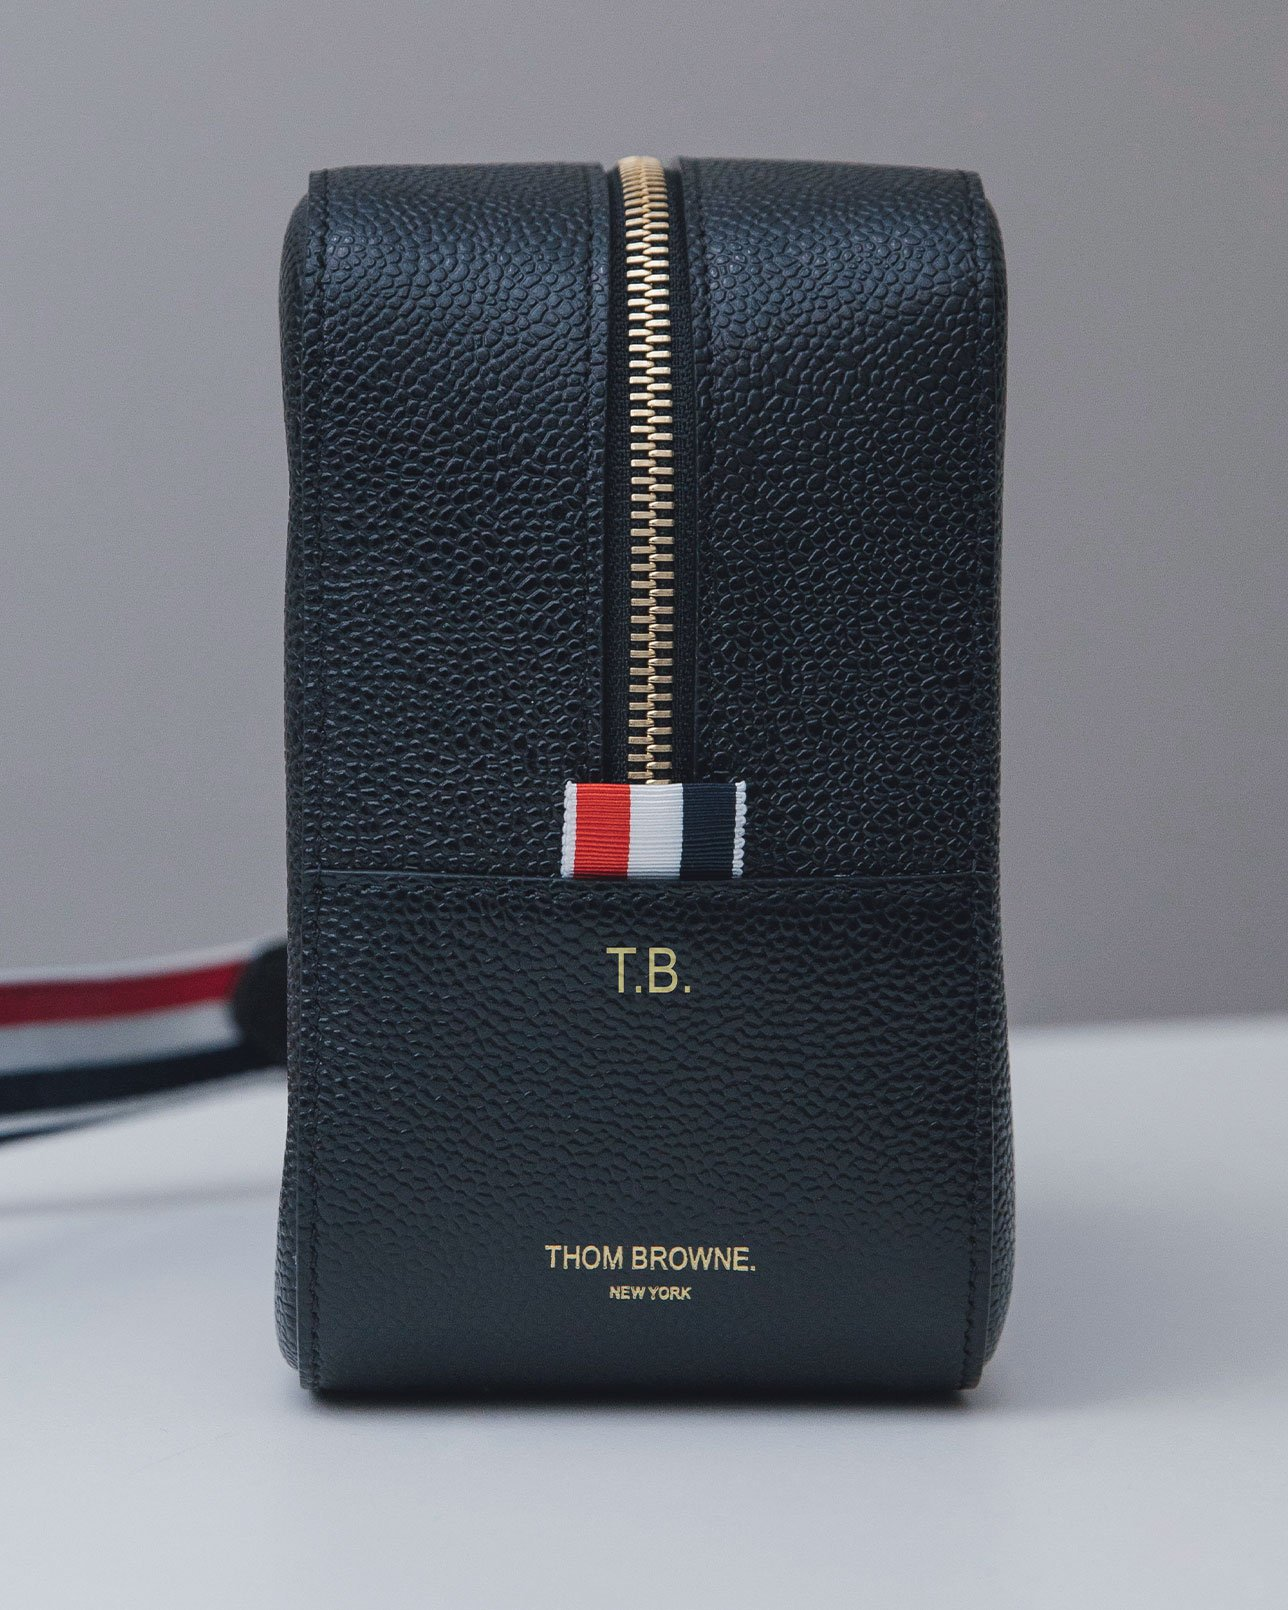 Leather Goods Personalization